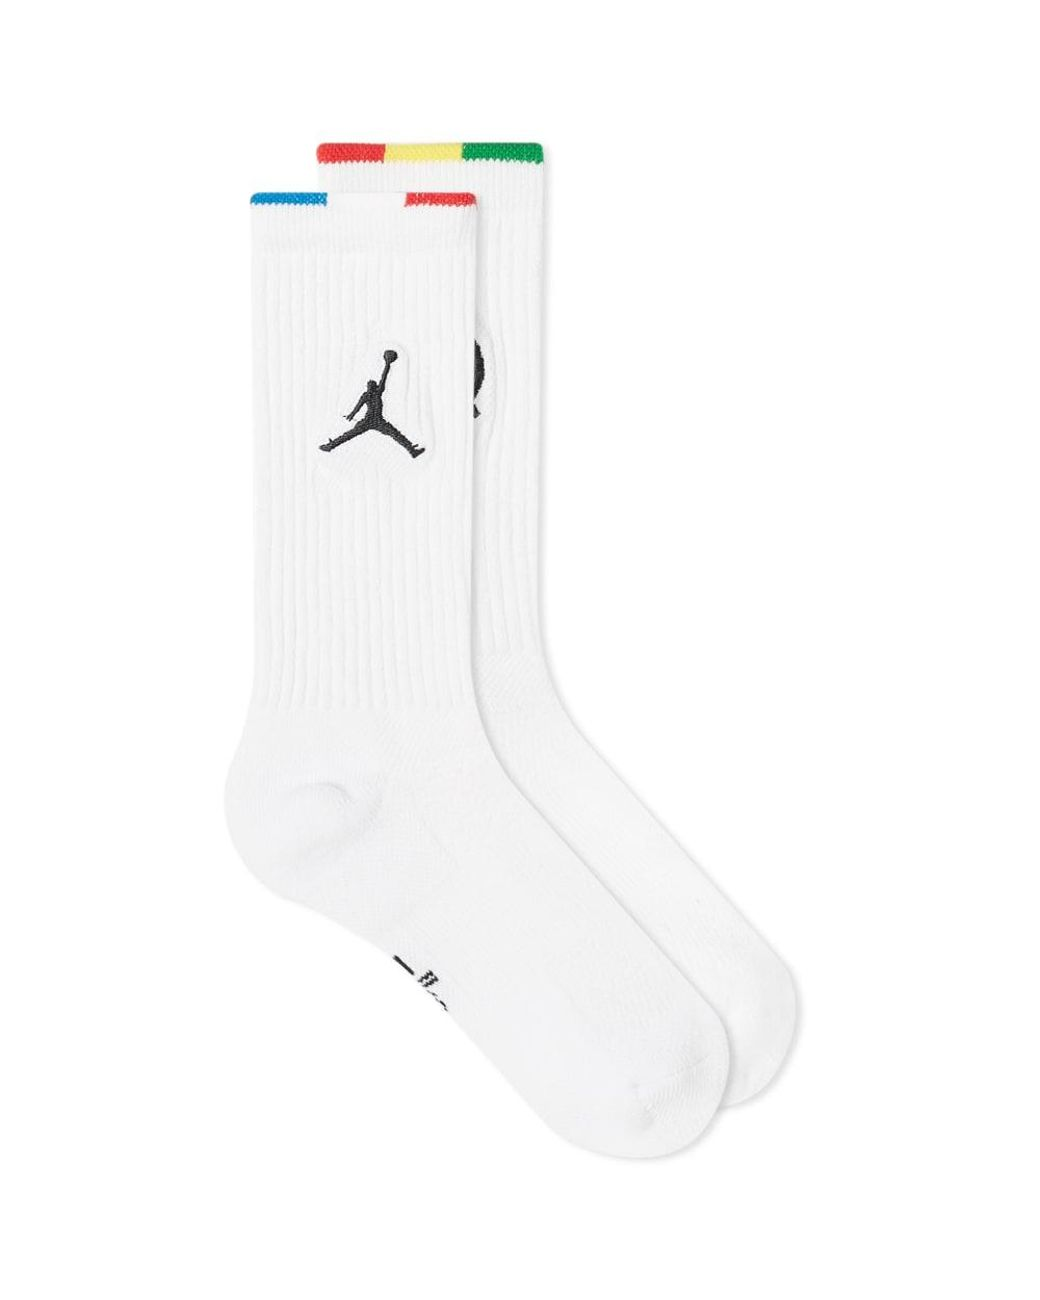 Jordan Teppichfliesen Nike Cotton Air Jordan Q54 Sock In White For Men Lyst